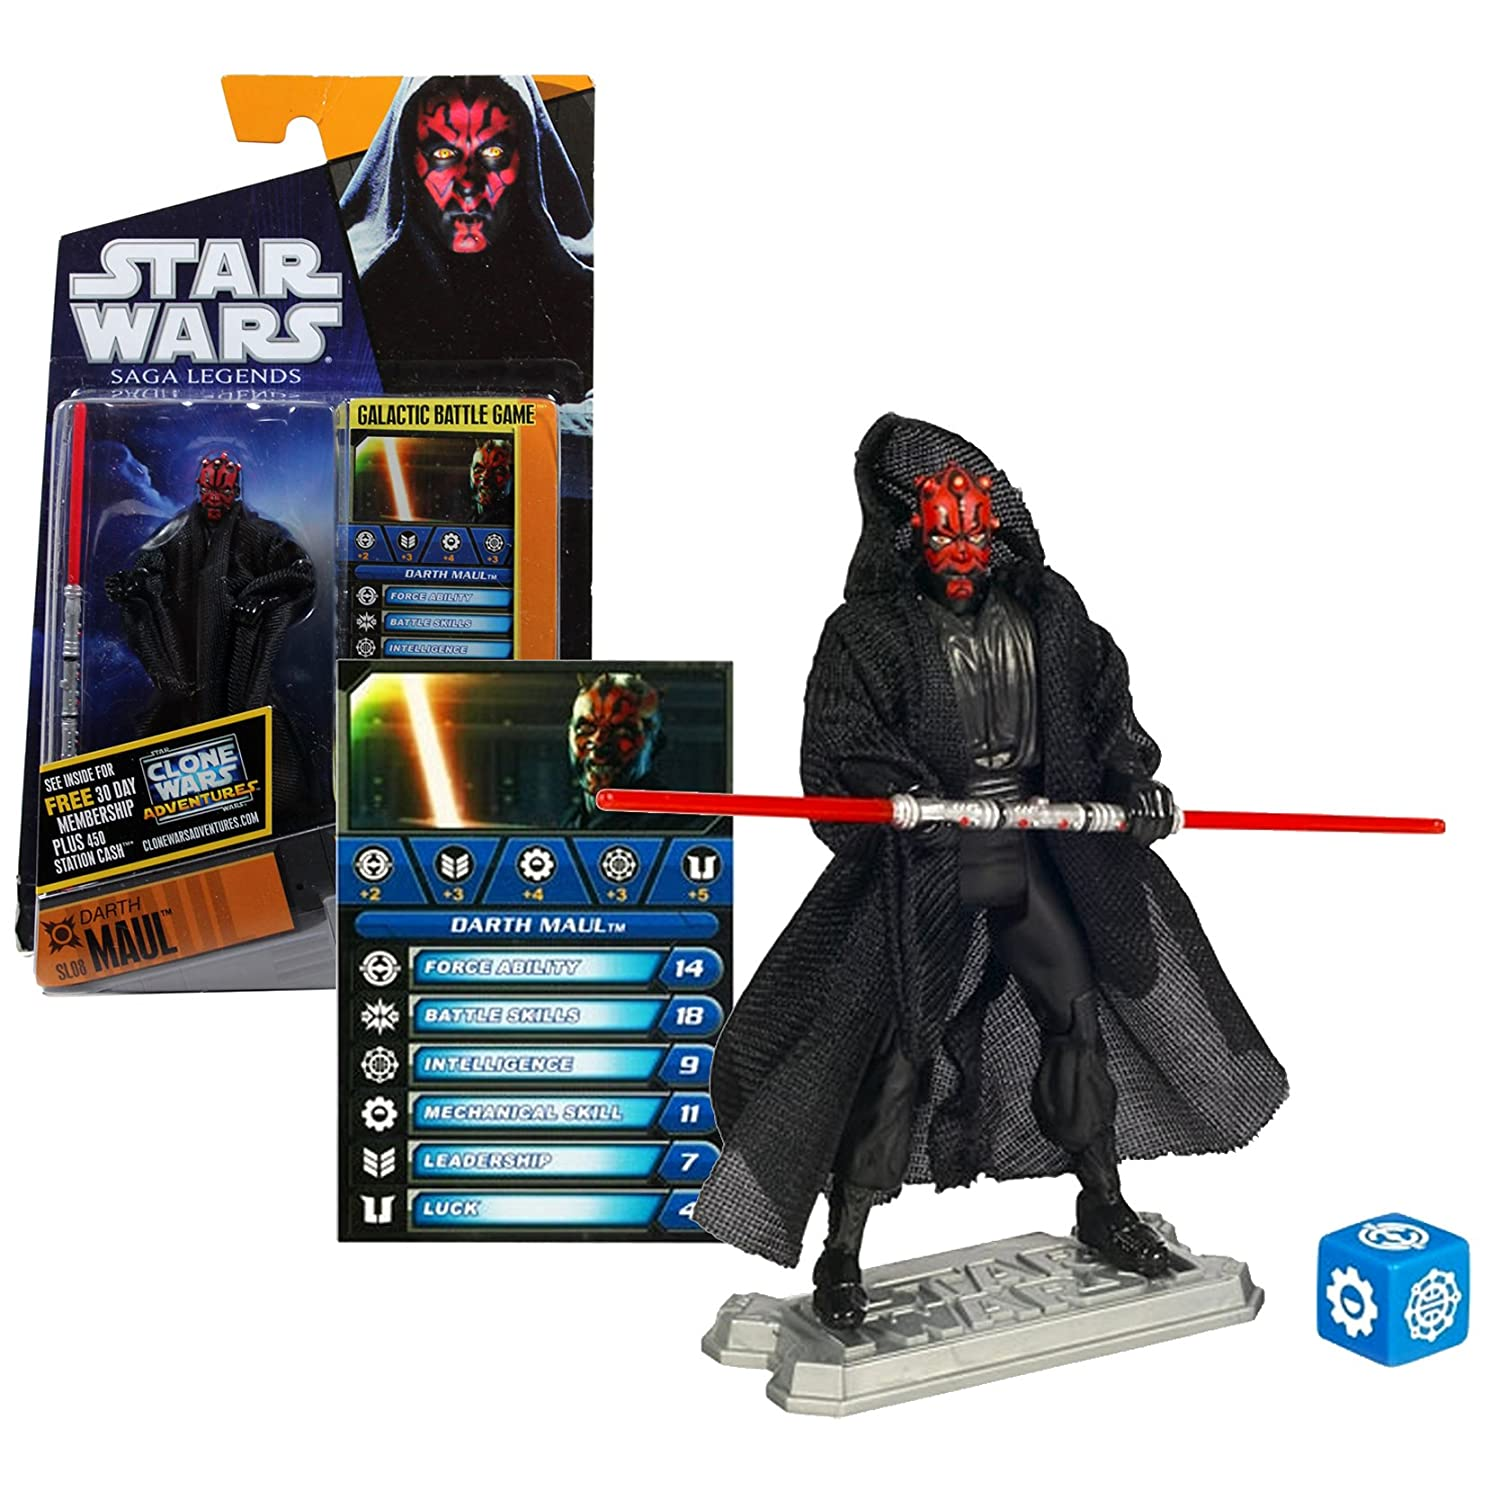 Hasbro Year 2010 Star Wars Saga Legends Galactic Battle Game 4 inch Tall Action Figure - SL08 DARTH MAUL with B00I0MH2KQ